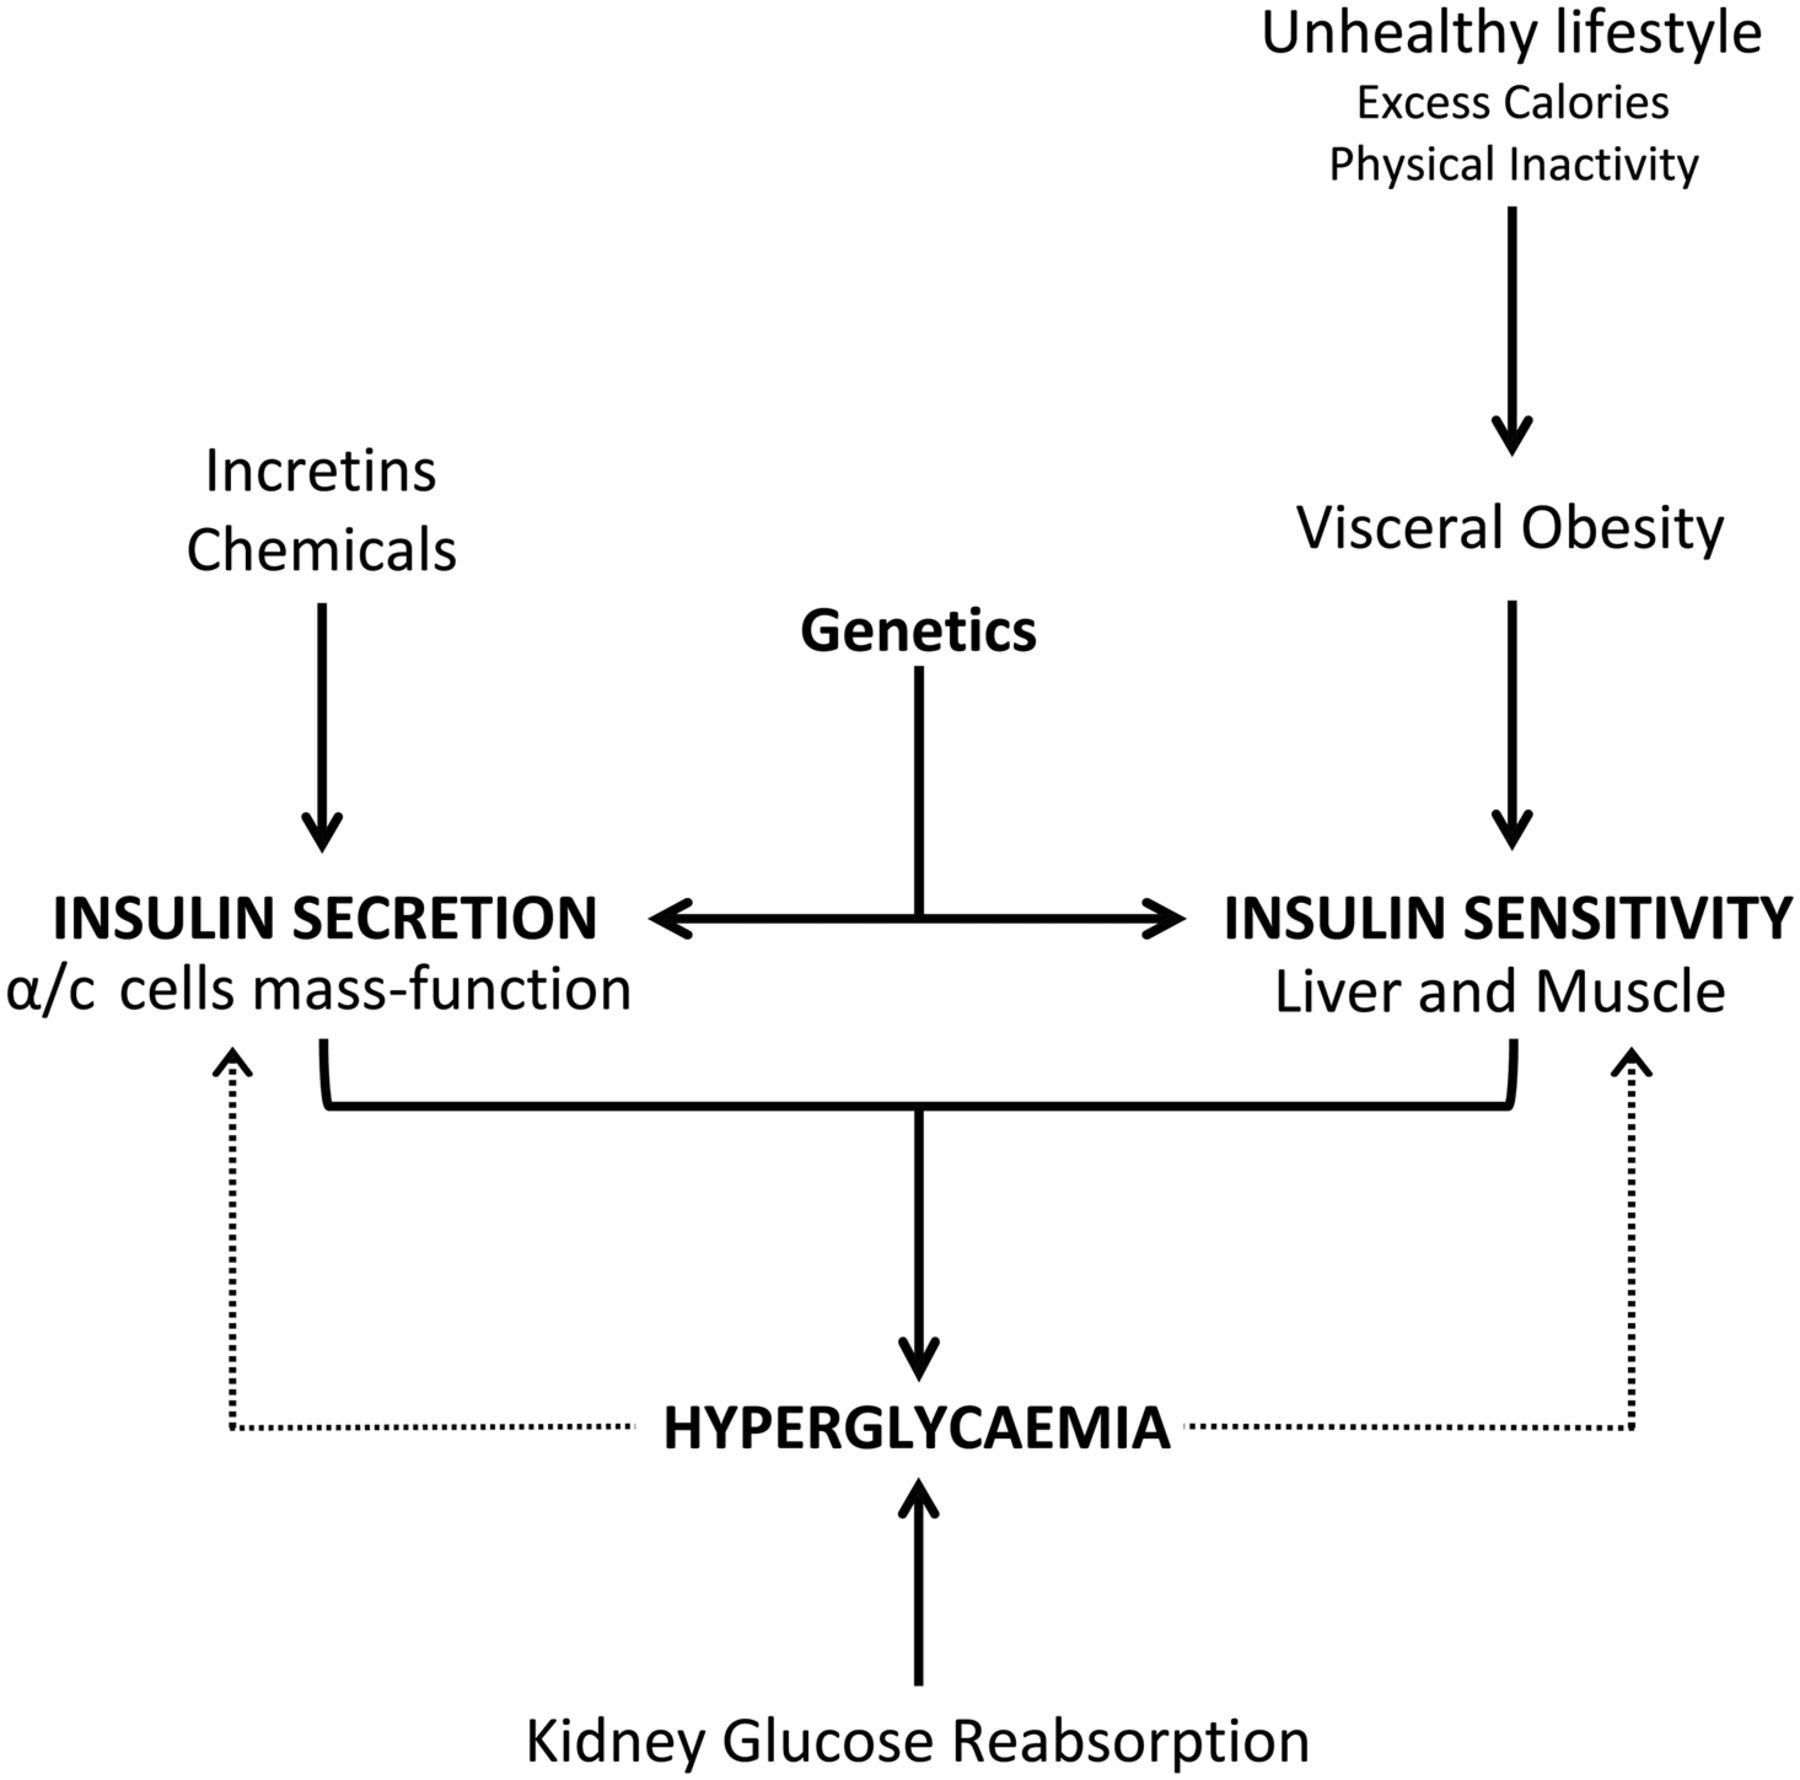 pathophysiology of type 1 and type 2 diabetes mellitus: a 90-year